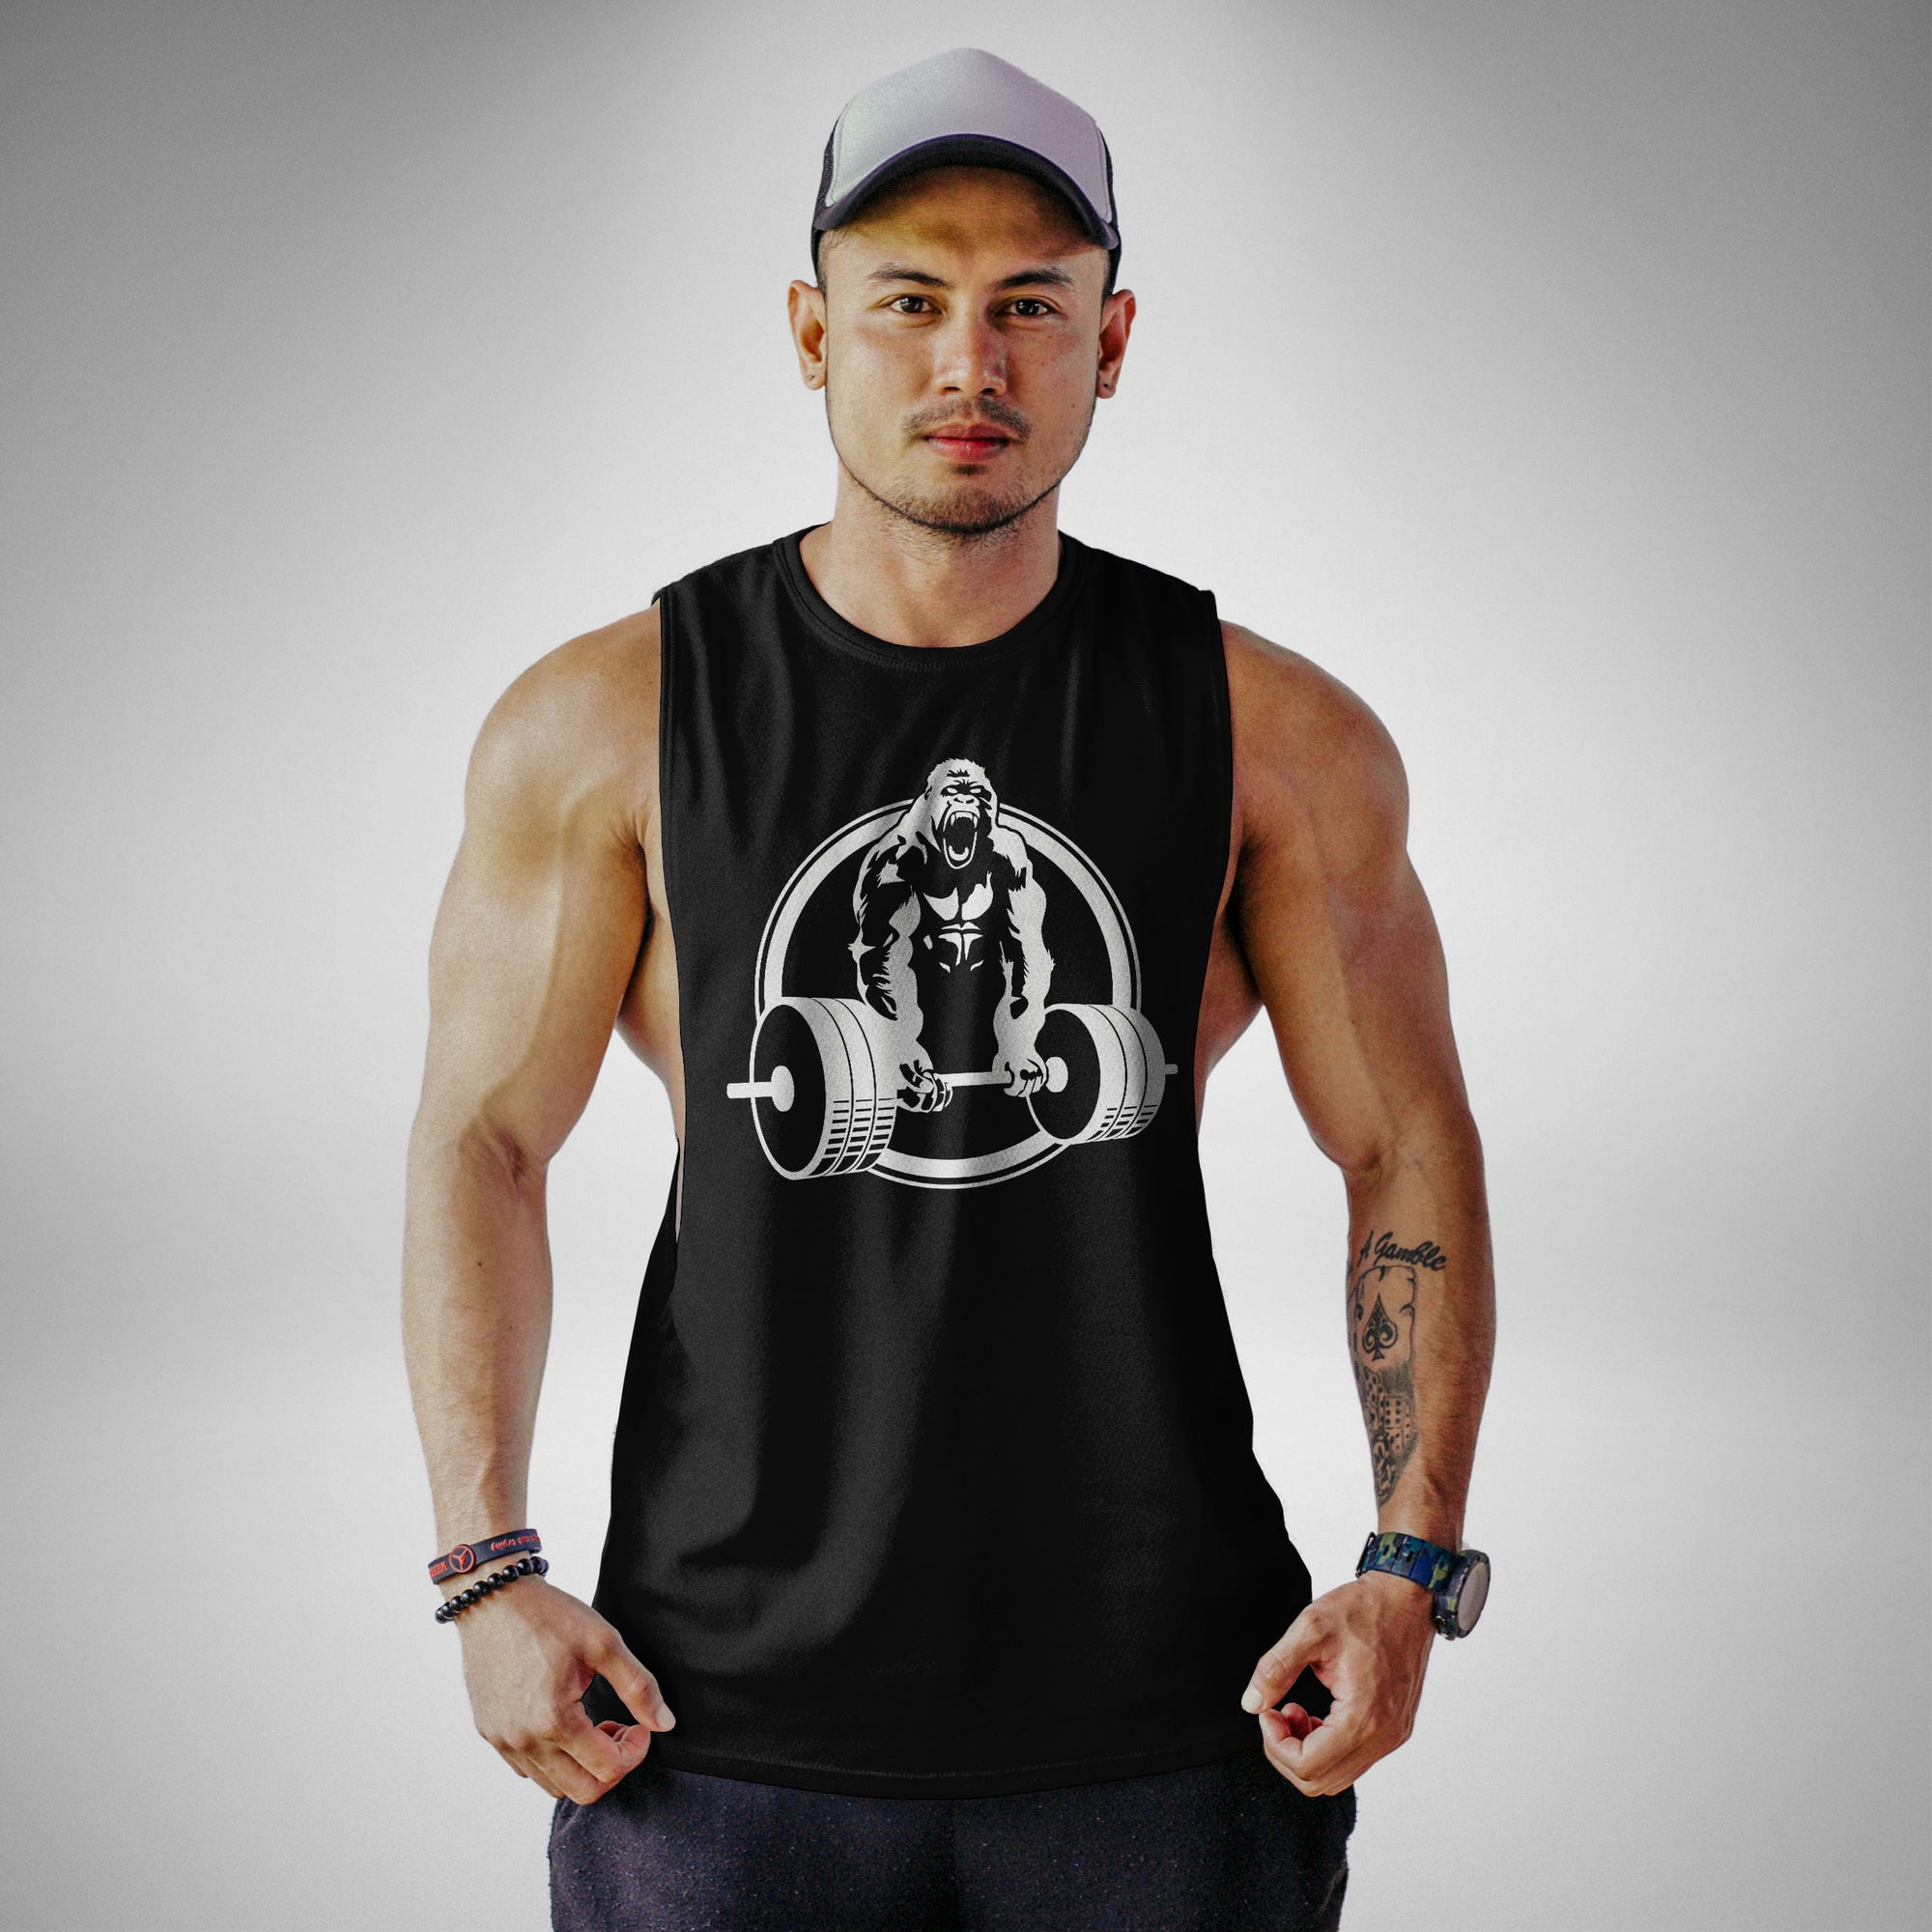 AM101 Gorilla Gym Openside Tank Top